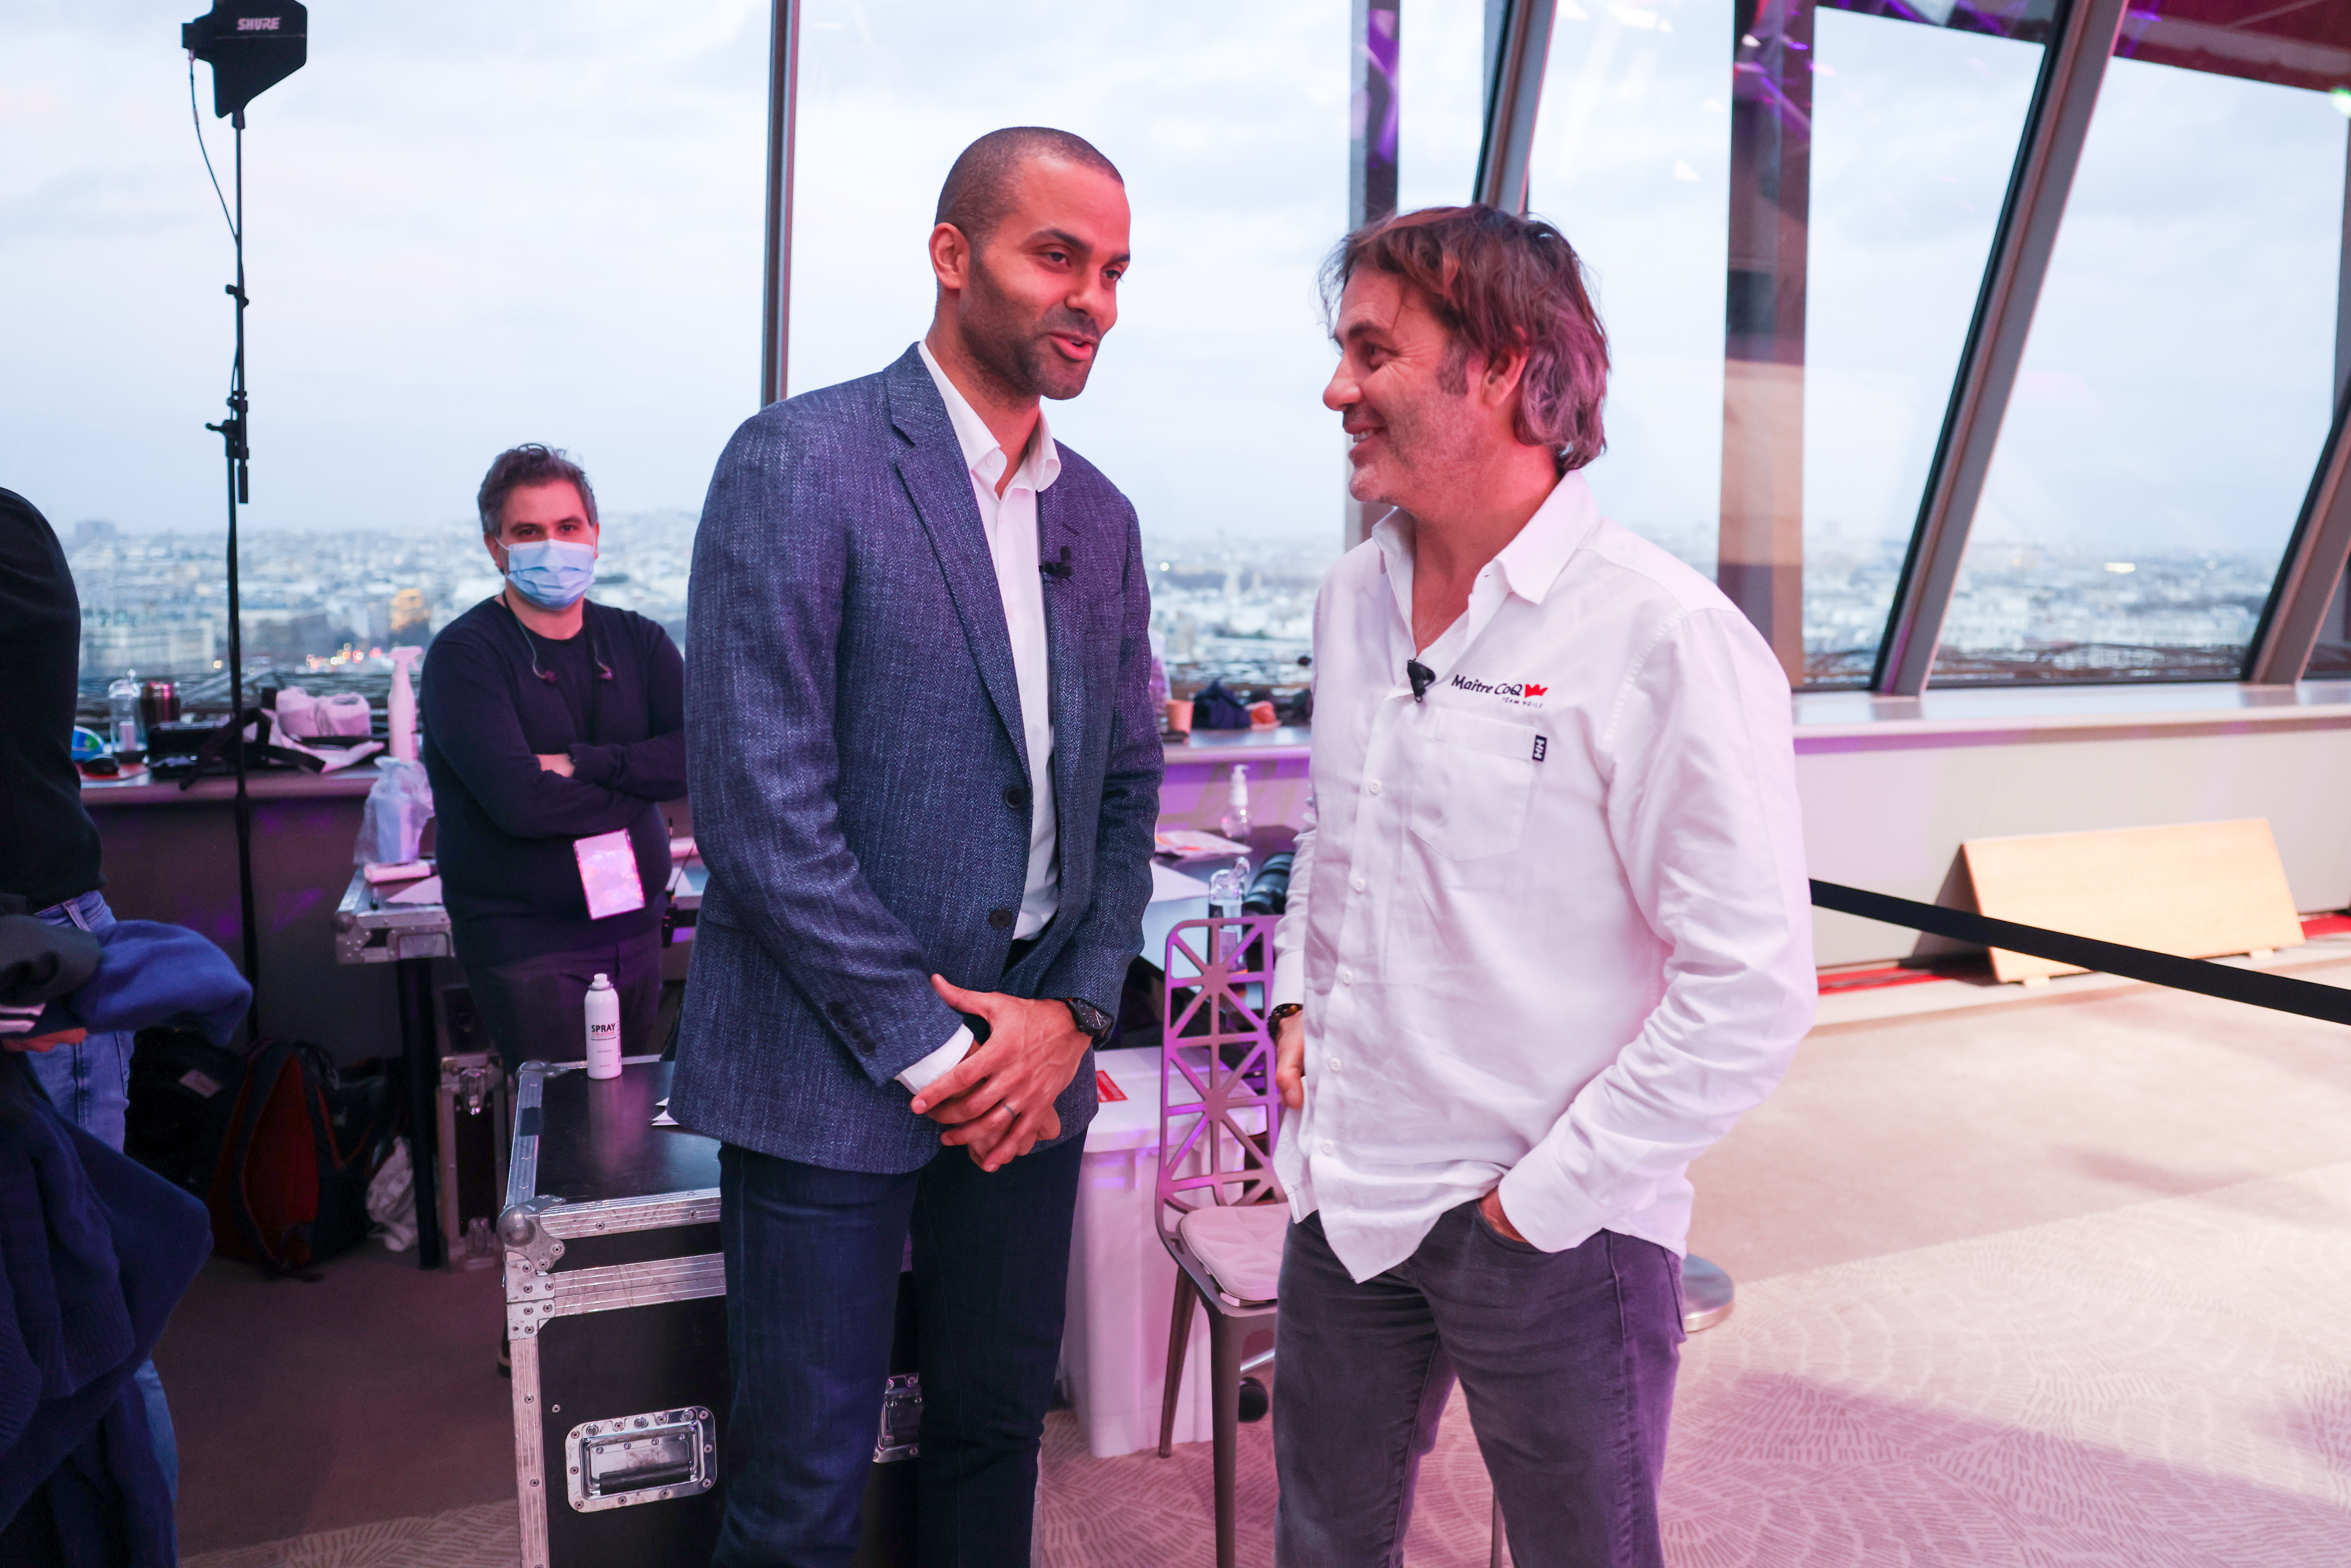 Tony Parker's $9.24 Million 'Infinity Nine' Yacht Is the Perfect Bachelor Pad for the Newly Divorced Father of 2